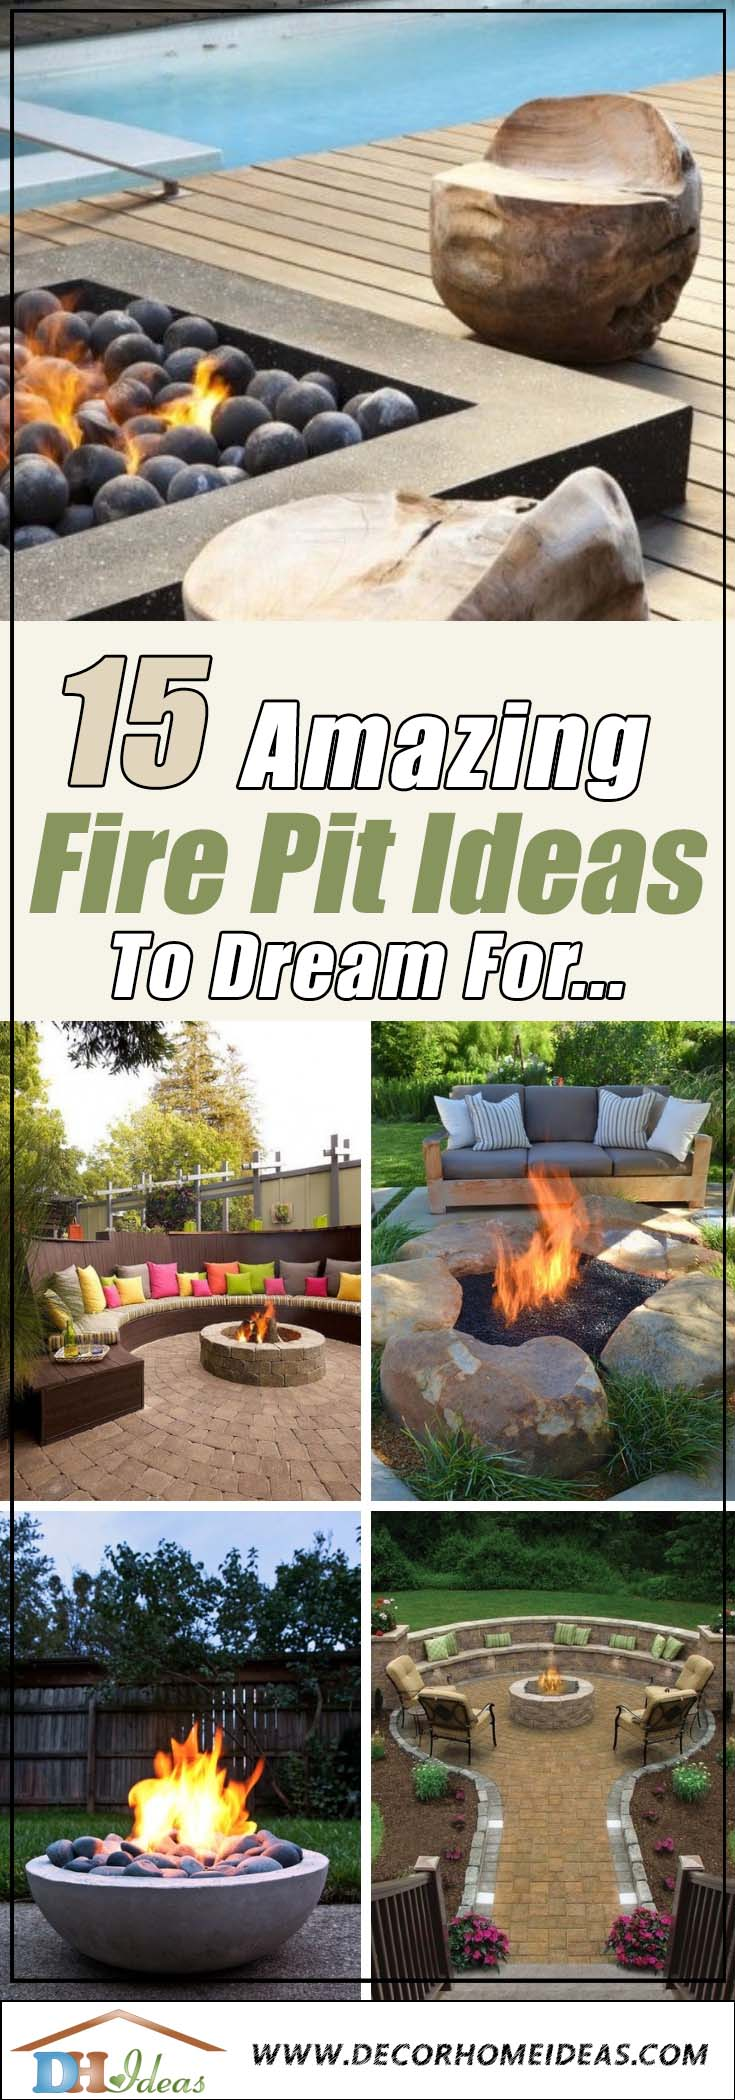 15 Amazing Fire Pits To Dream For | Get some inspiration on fire pits and create your own. #firepit #exterior #patio #cozy #decor #garden #backyard #fire #design #decorhomeideas